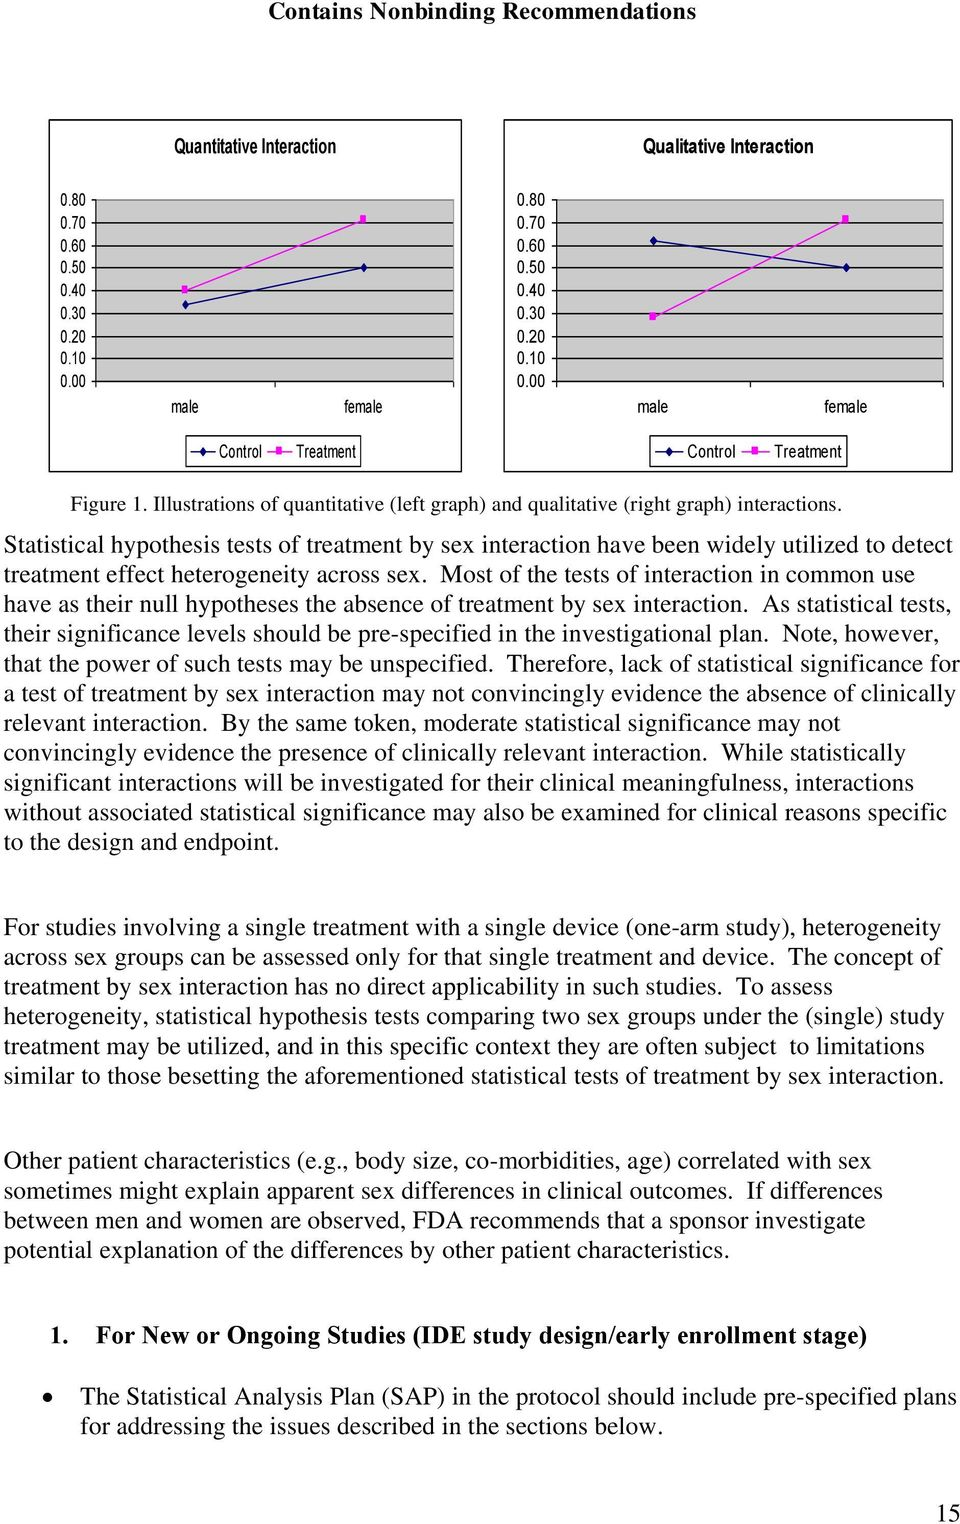 Statistical hypothesis tests of treatment by sex interaction have been widely utilized to detect treatment effect heterogeneity across sex.